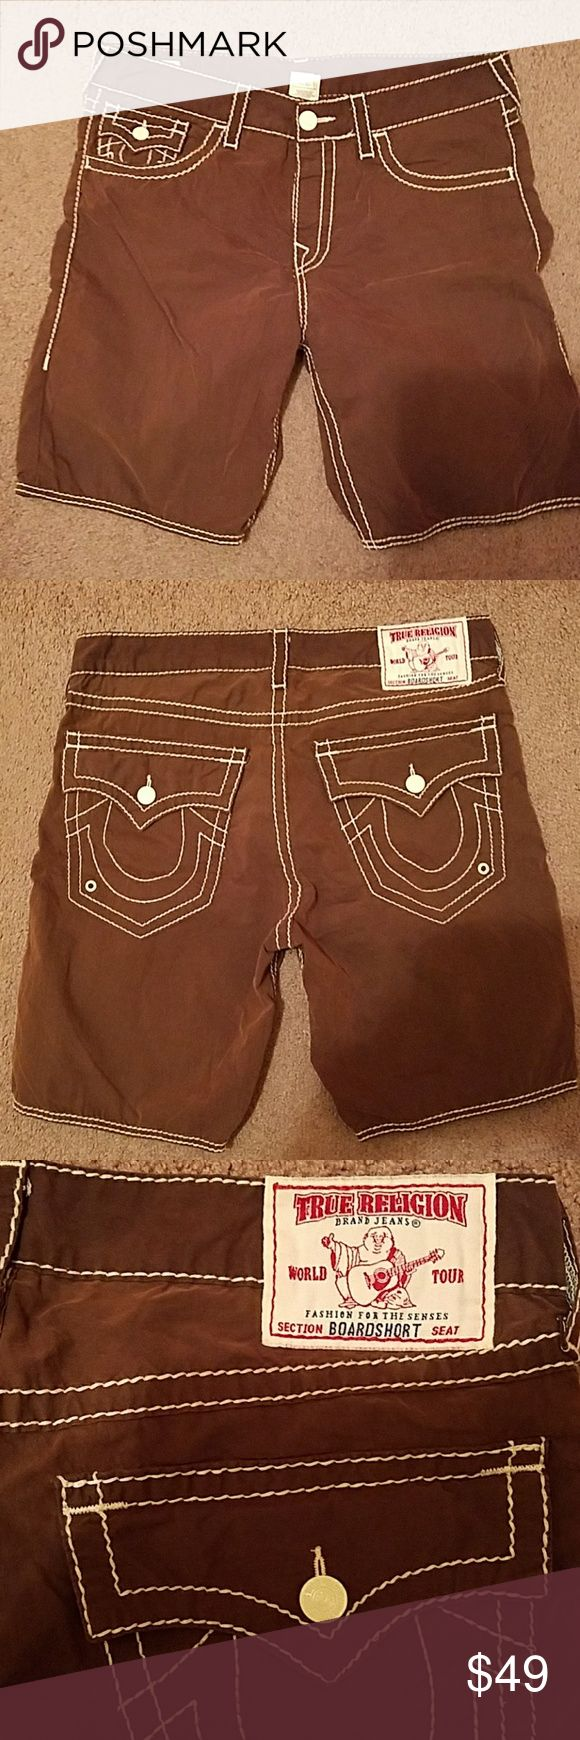 TRUE Religion Brown Lightweight sz 34 Shorts True Religion Brown lightweight shorts.  Size 34 men's casual shorts   Brown with white trim with five pockets.  The shorts are brand new without tags and are authentic True Religion True Religion Shorts